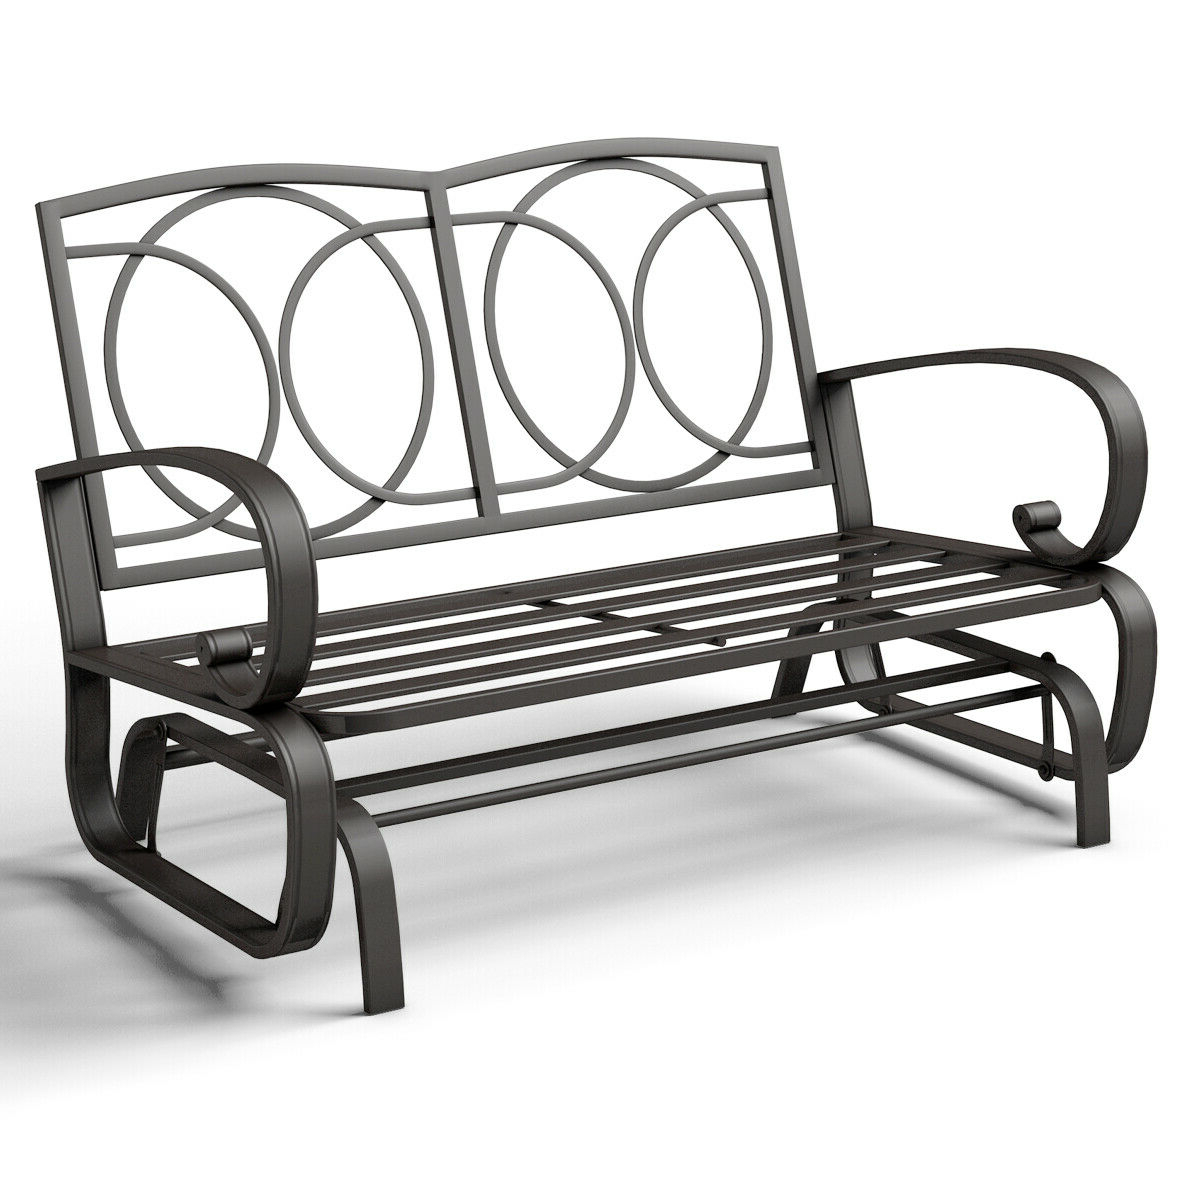 Costway Glider Outdoor Patio Rocking Bench Loveseat With Most Up To Date Steel Patio Swing Glider Benches (Gallery 26 of 30)